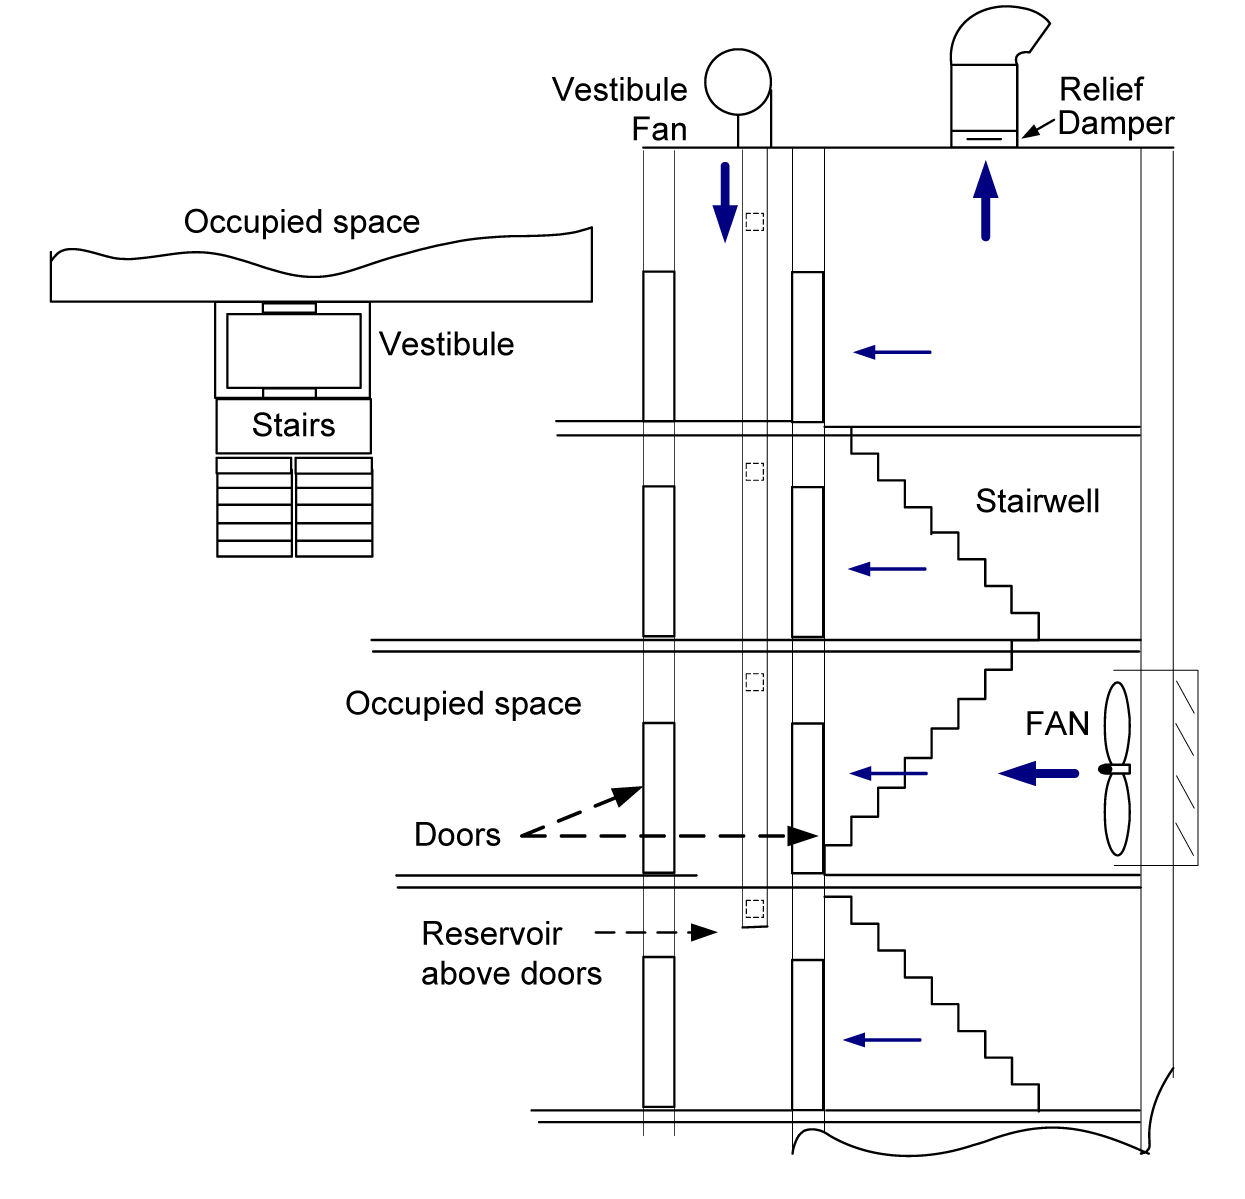 Actuated Dampers in Smoke Control Systems 9